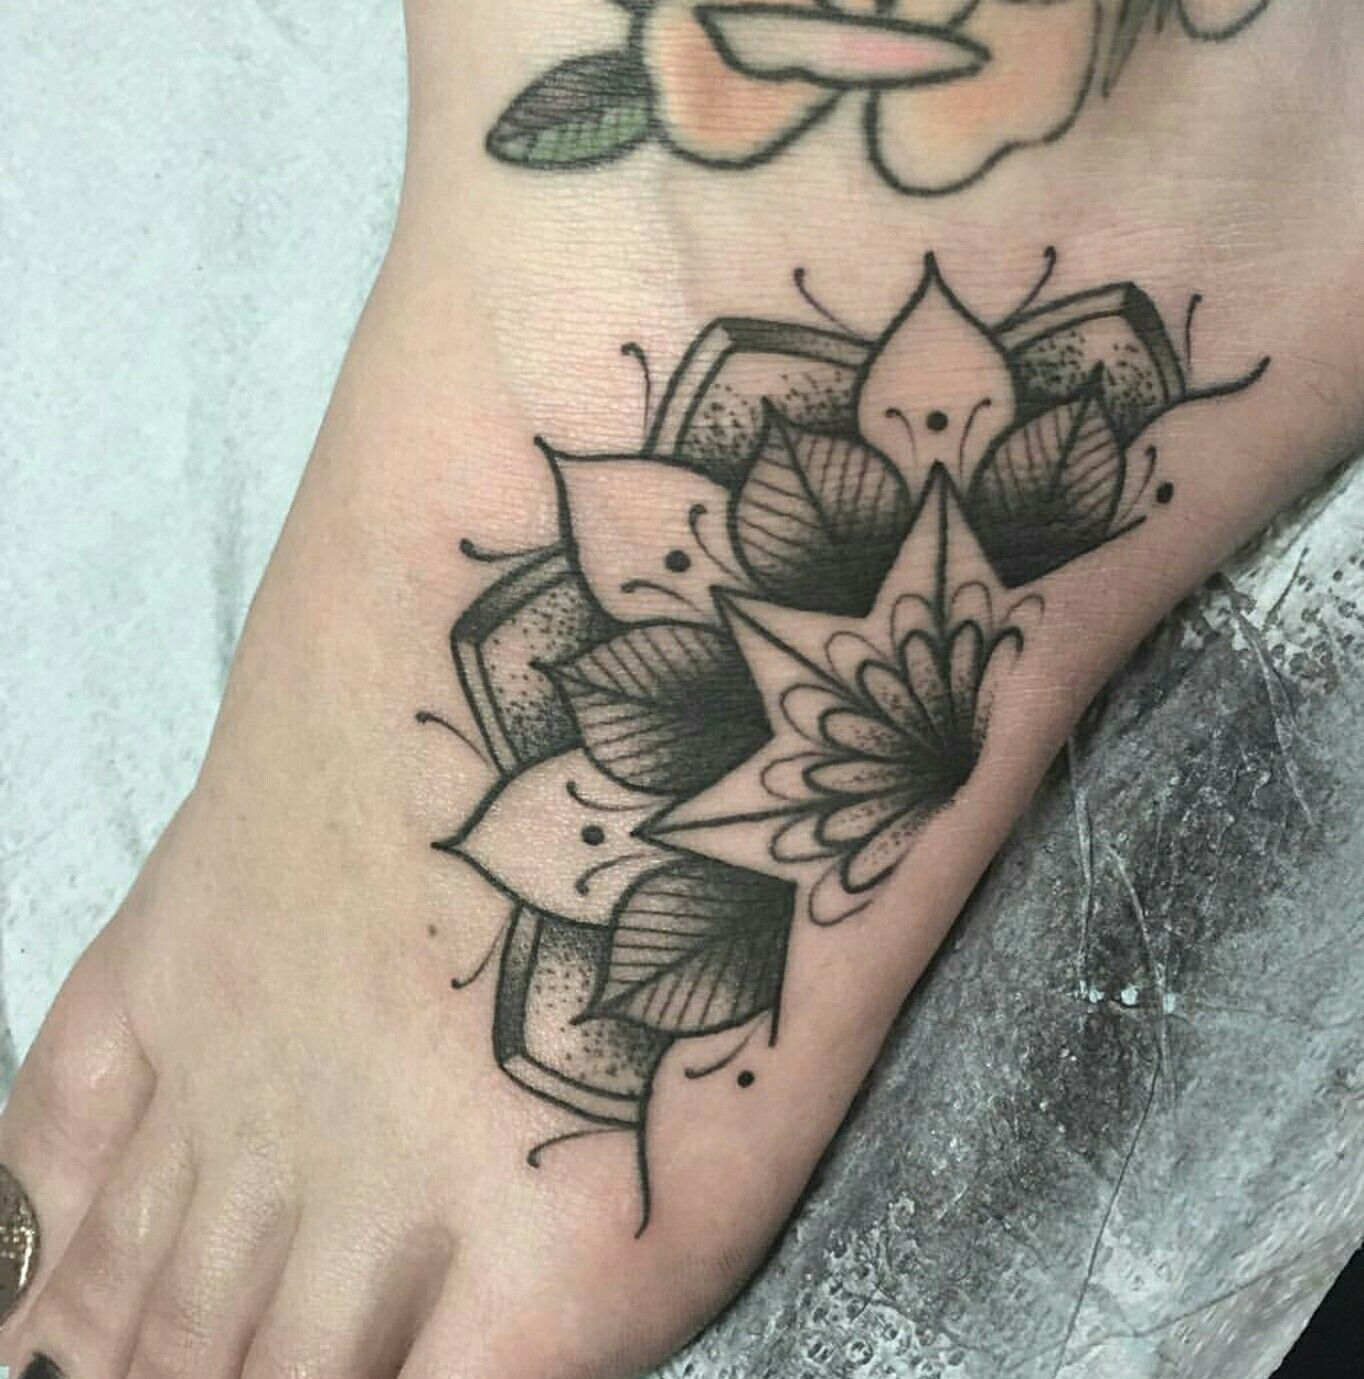 Mandala foot tattoo tattoo ideas pinterest best for Tattoo on the foot